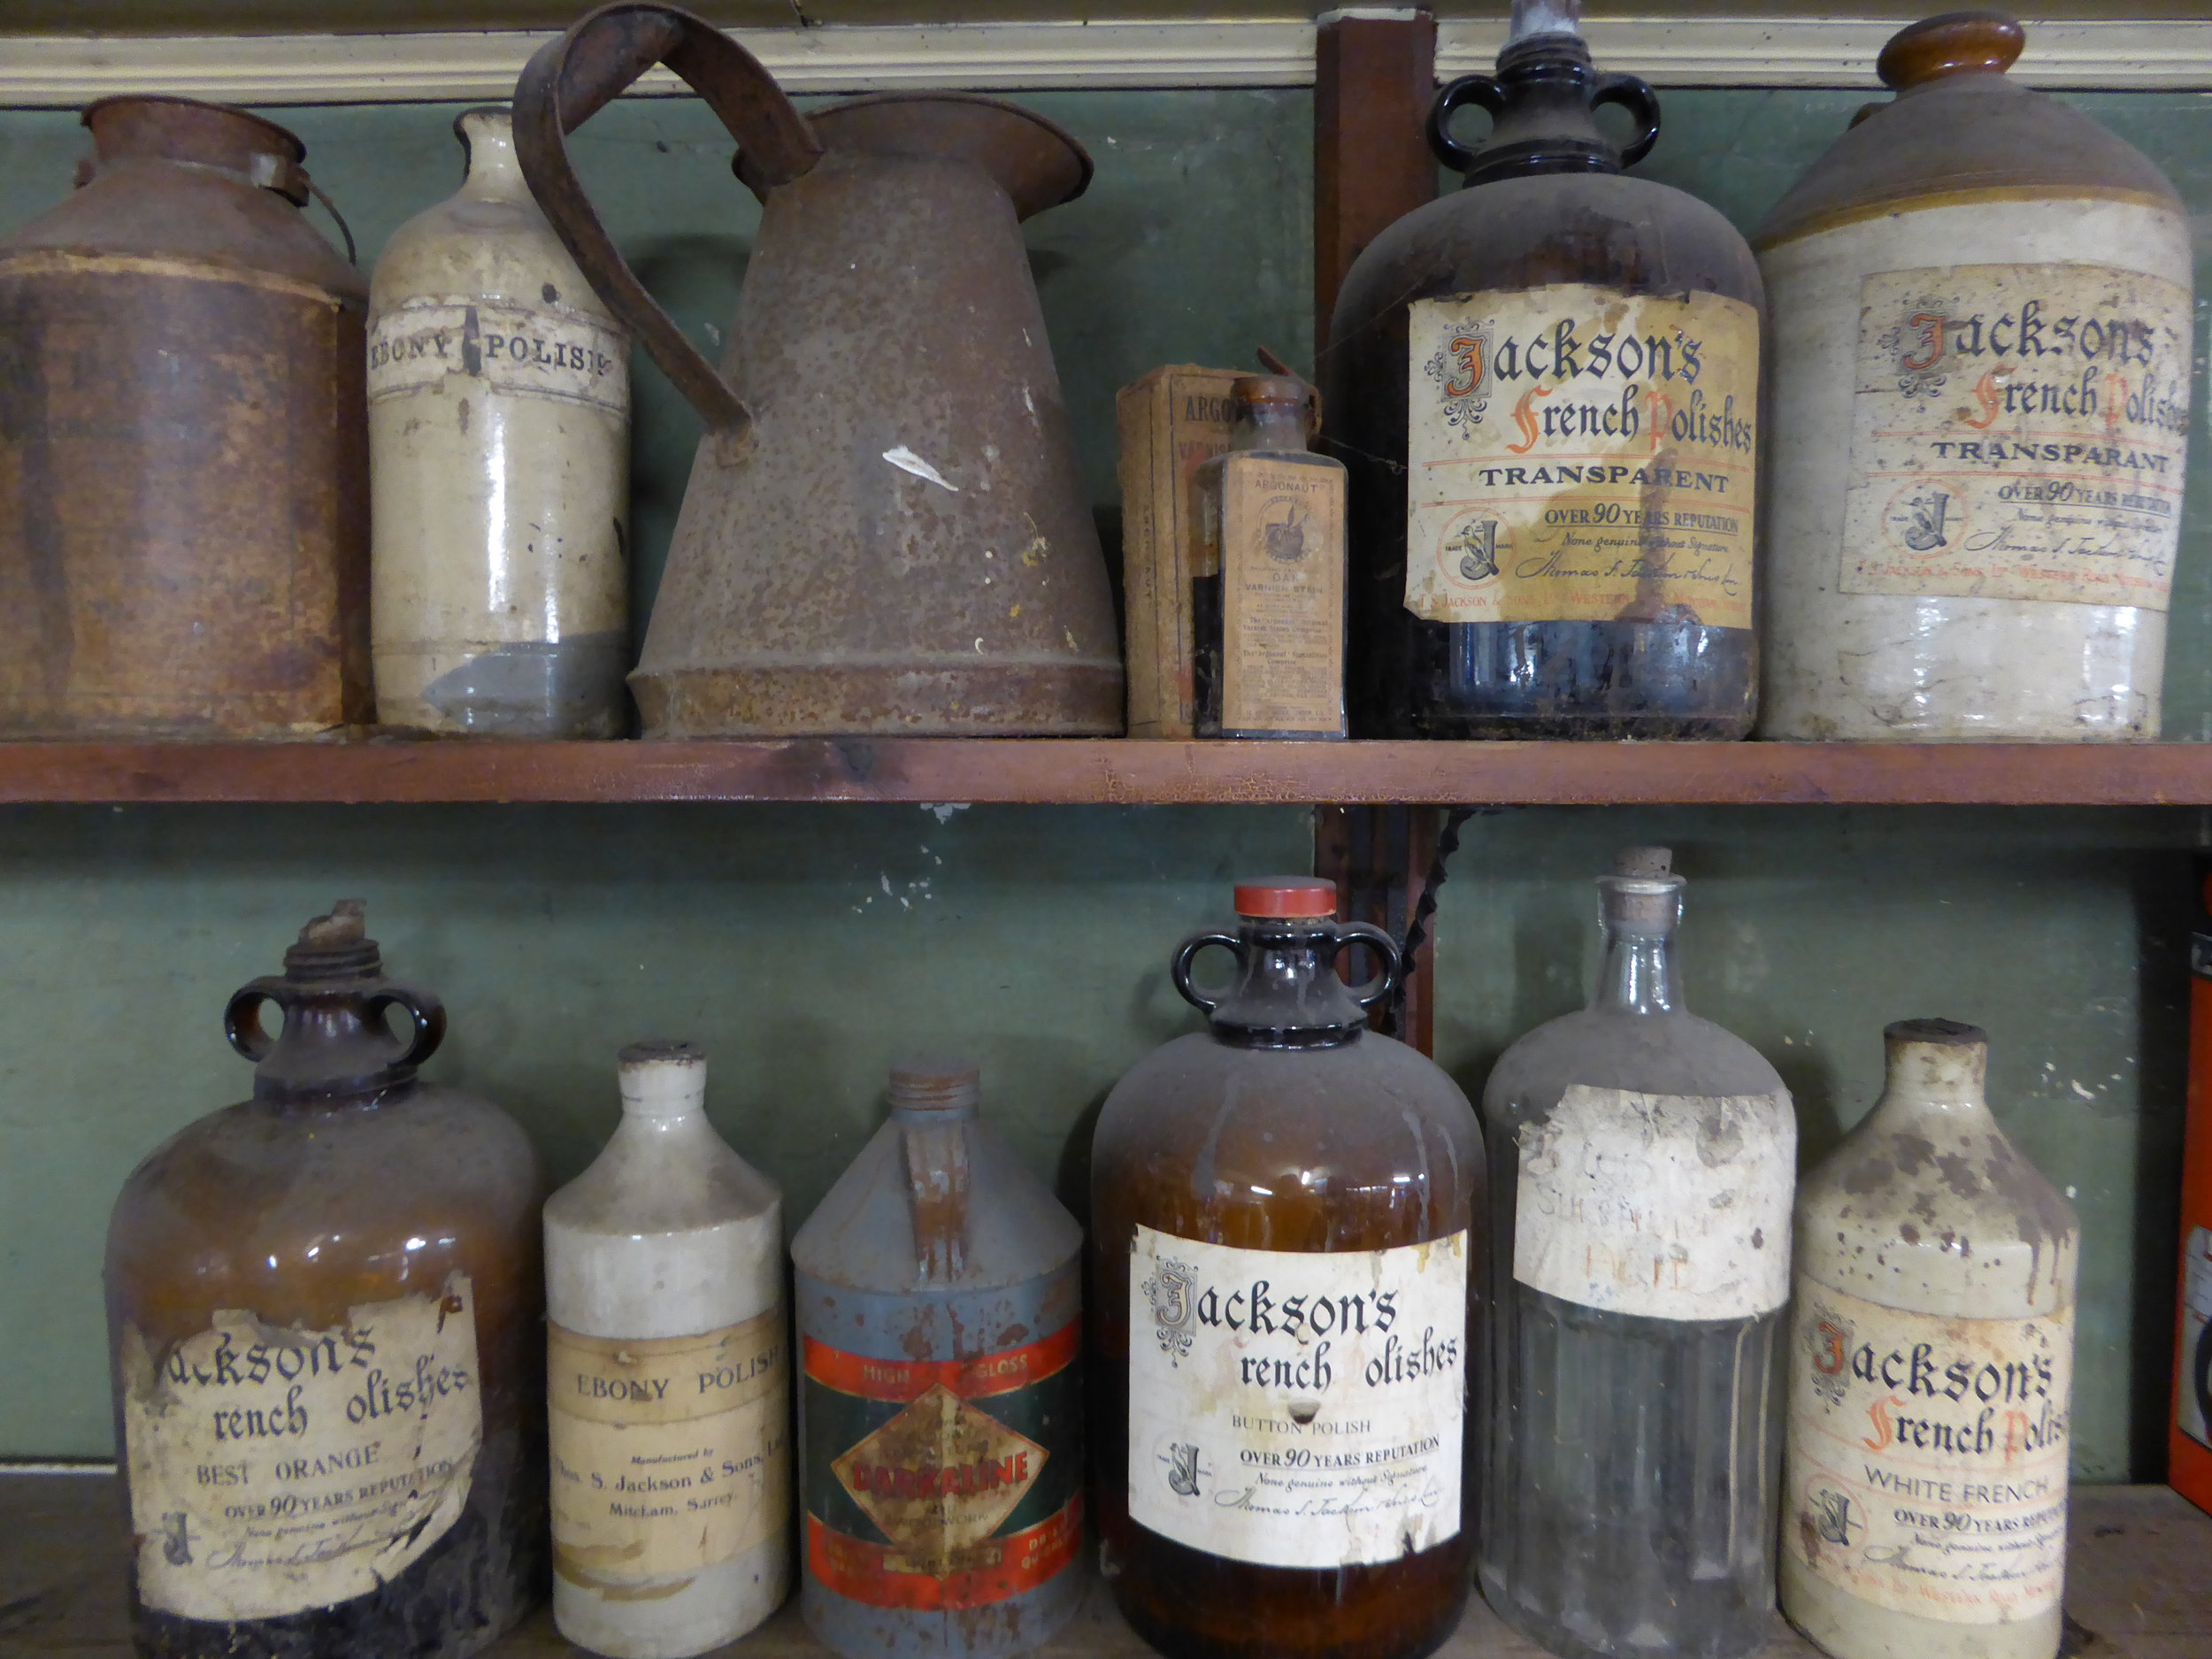 Old containers from across the years